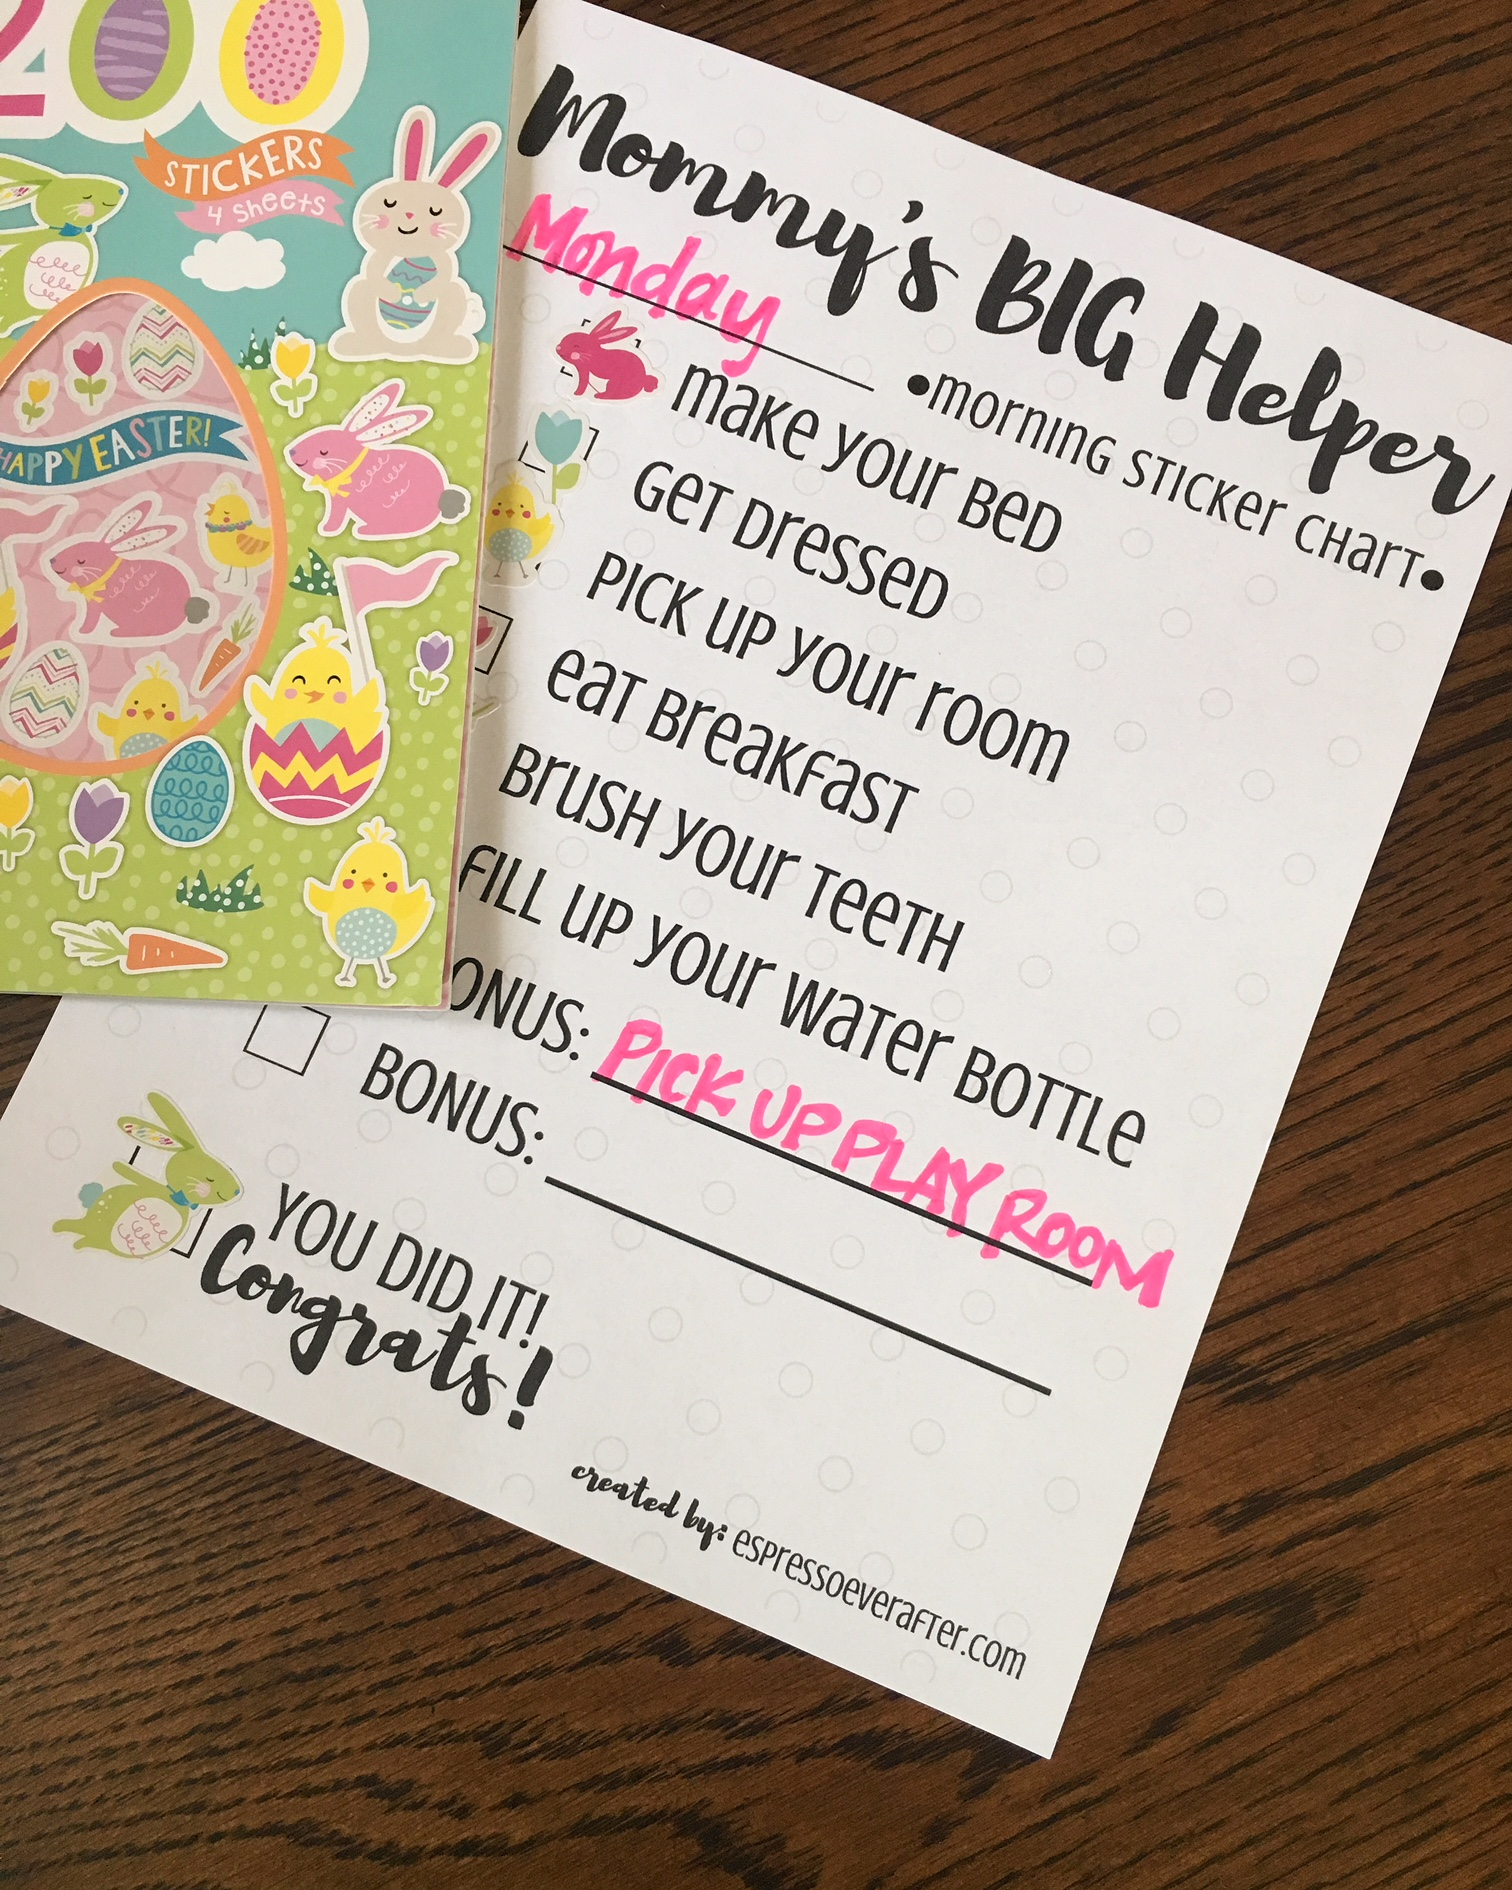 Mommys Big Helper  Free Printable Sticker Chart